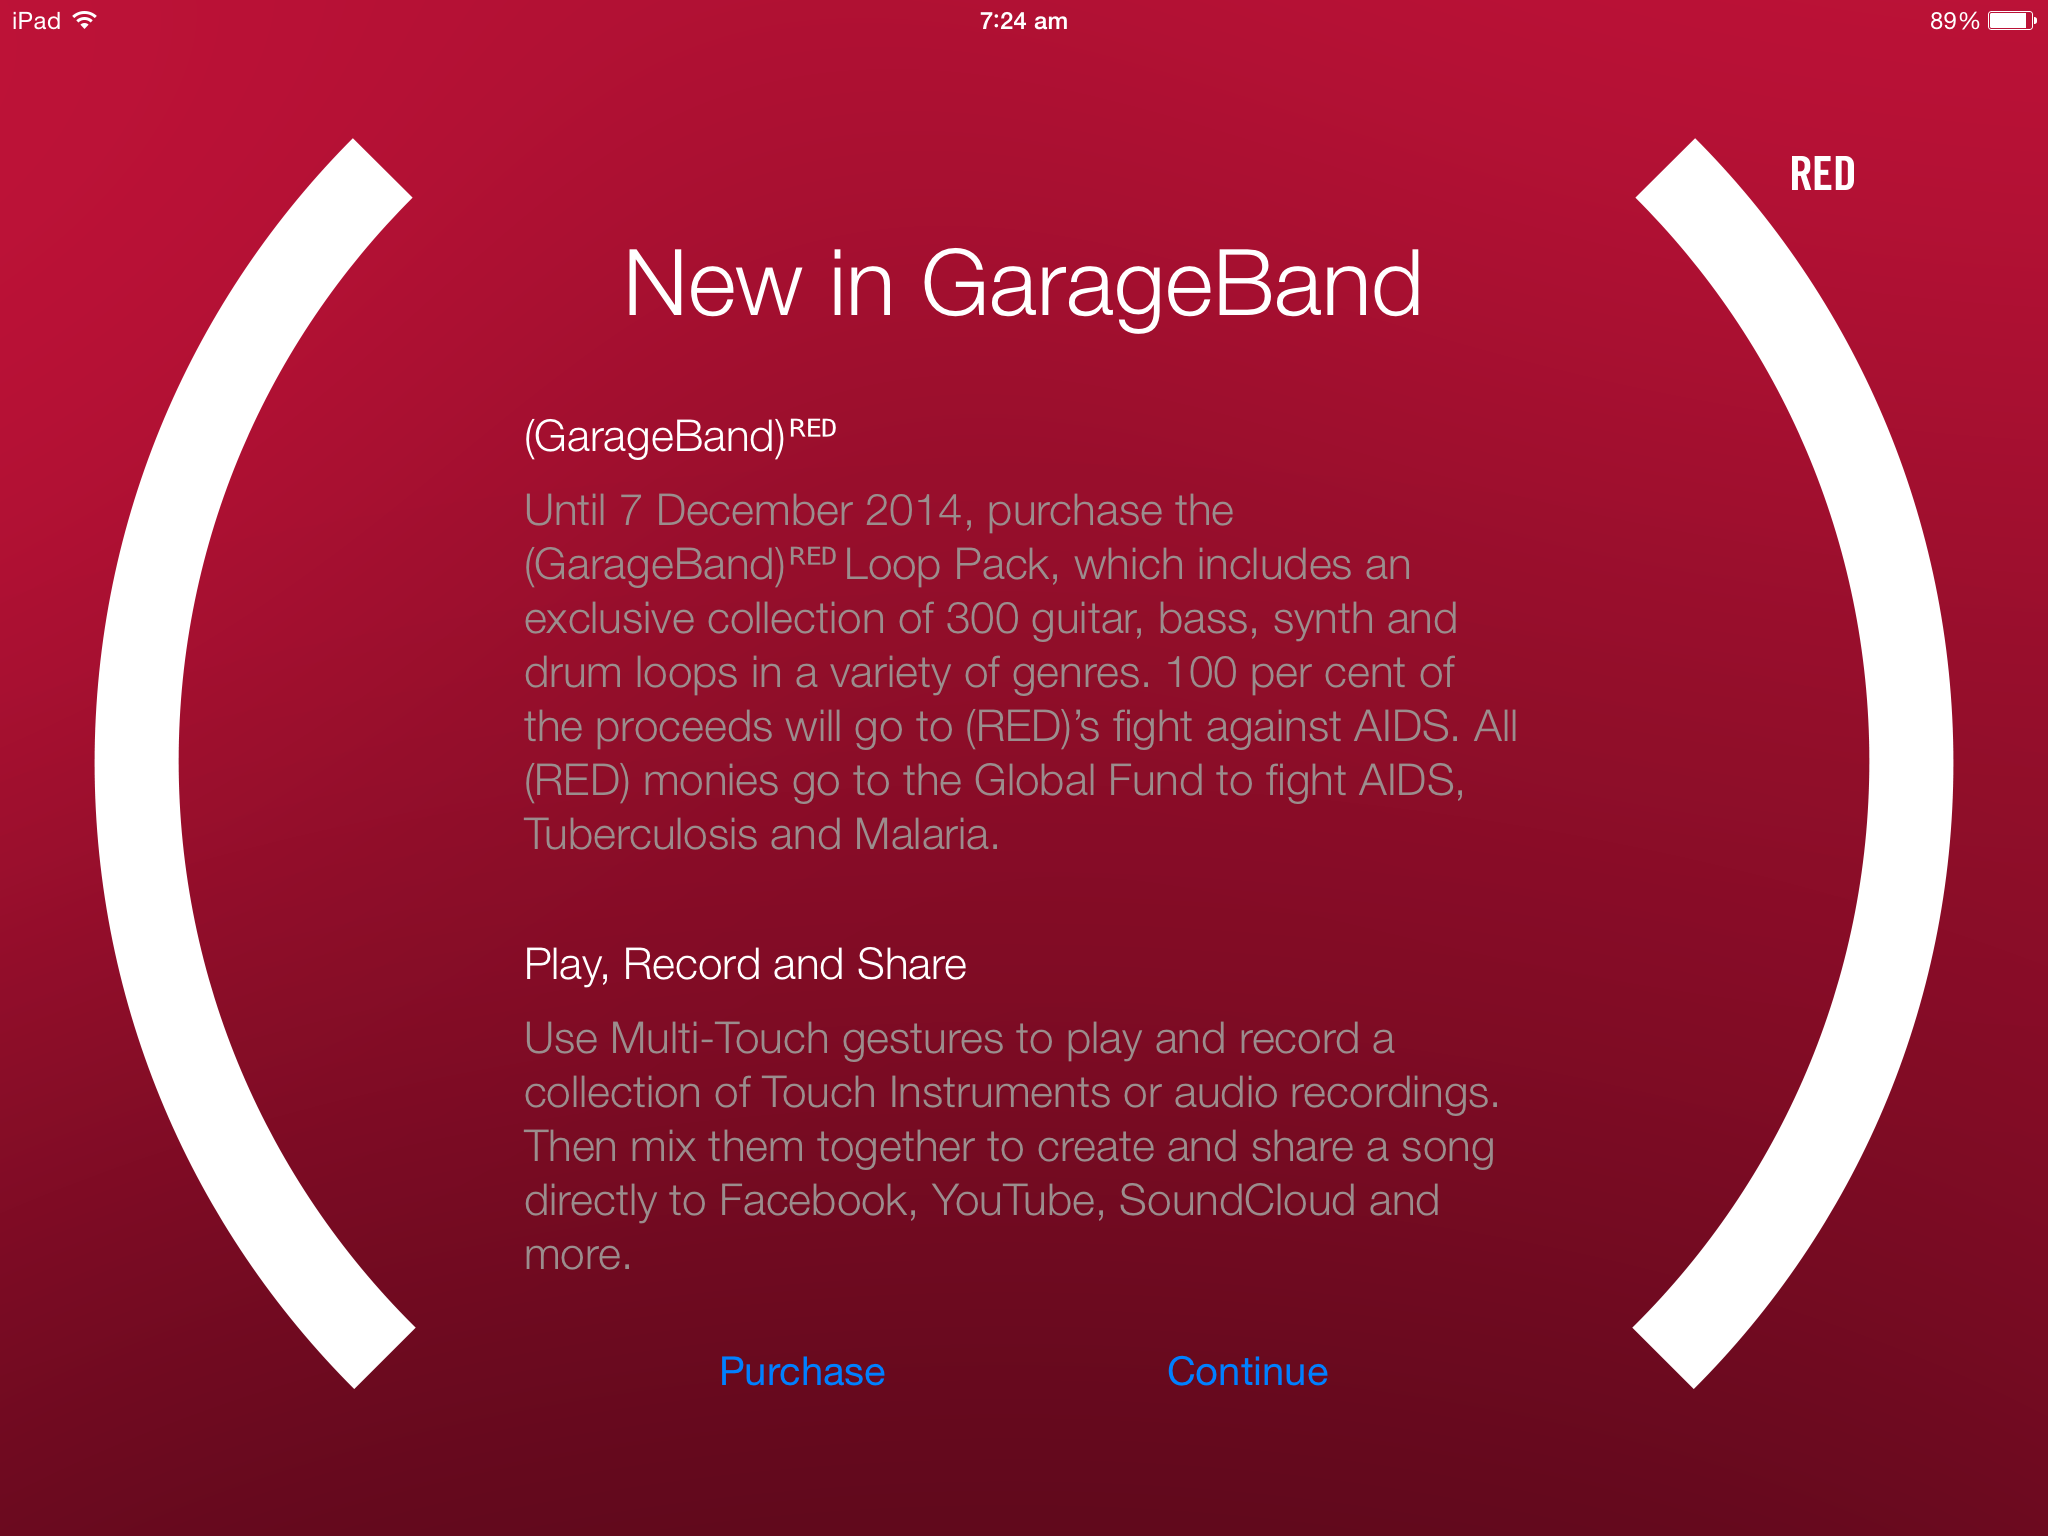 ... add substantially to your iOS Garageband loops and support Project RED